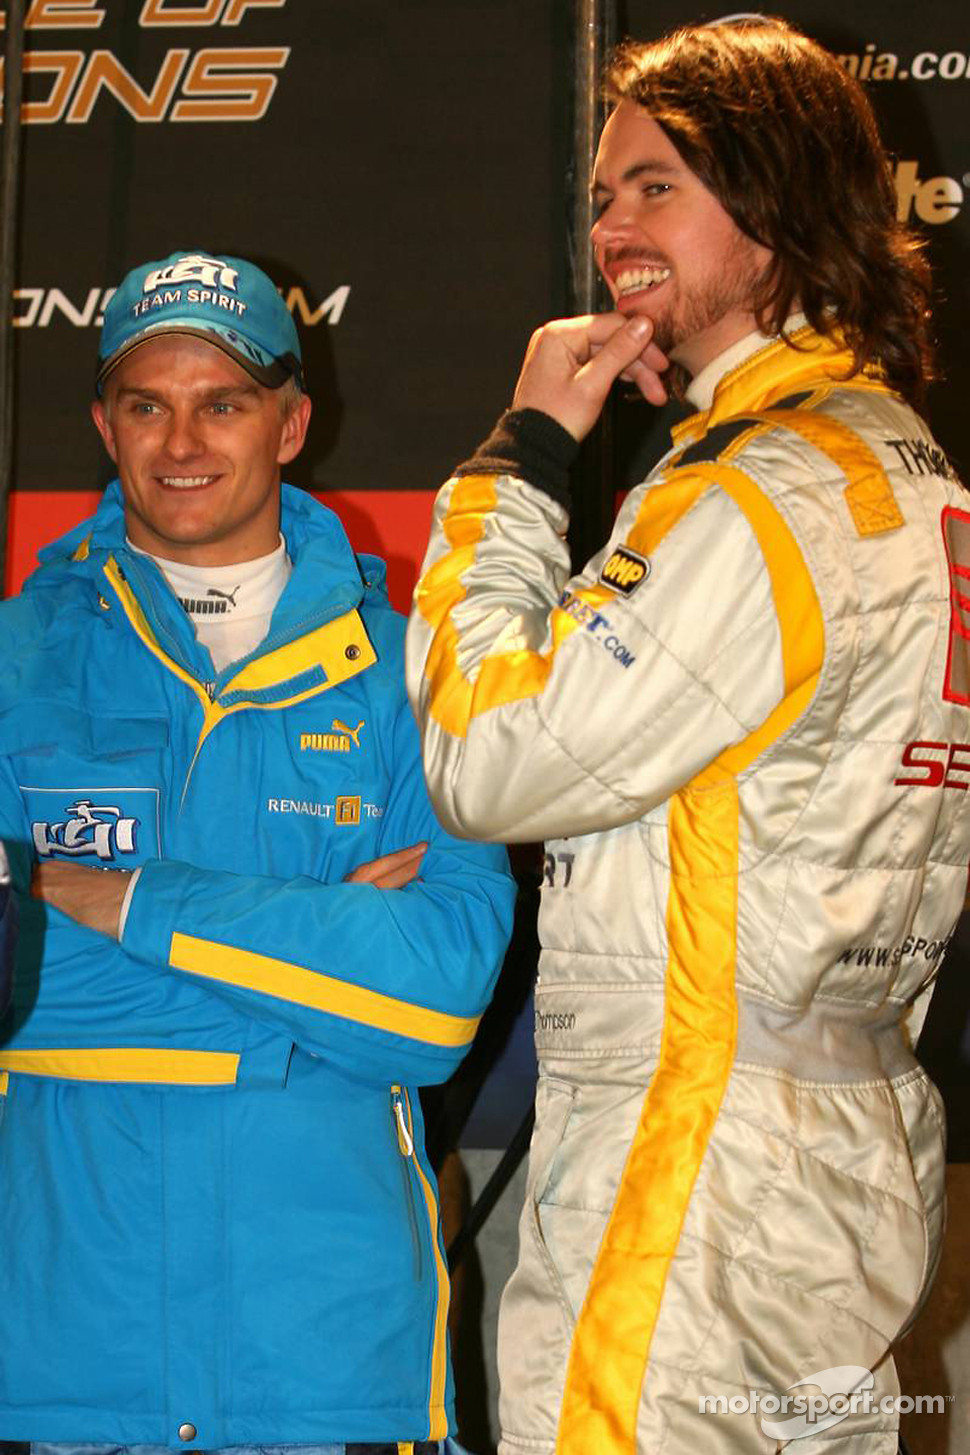 Heikki Kovalainen and James Thompson